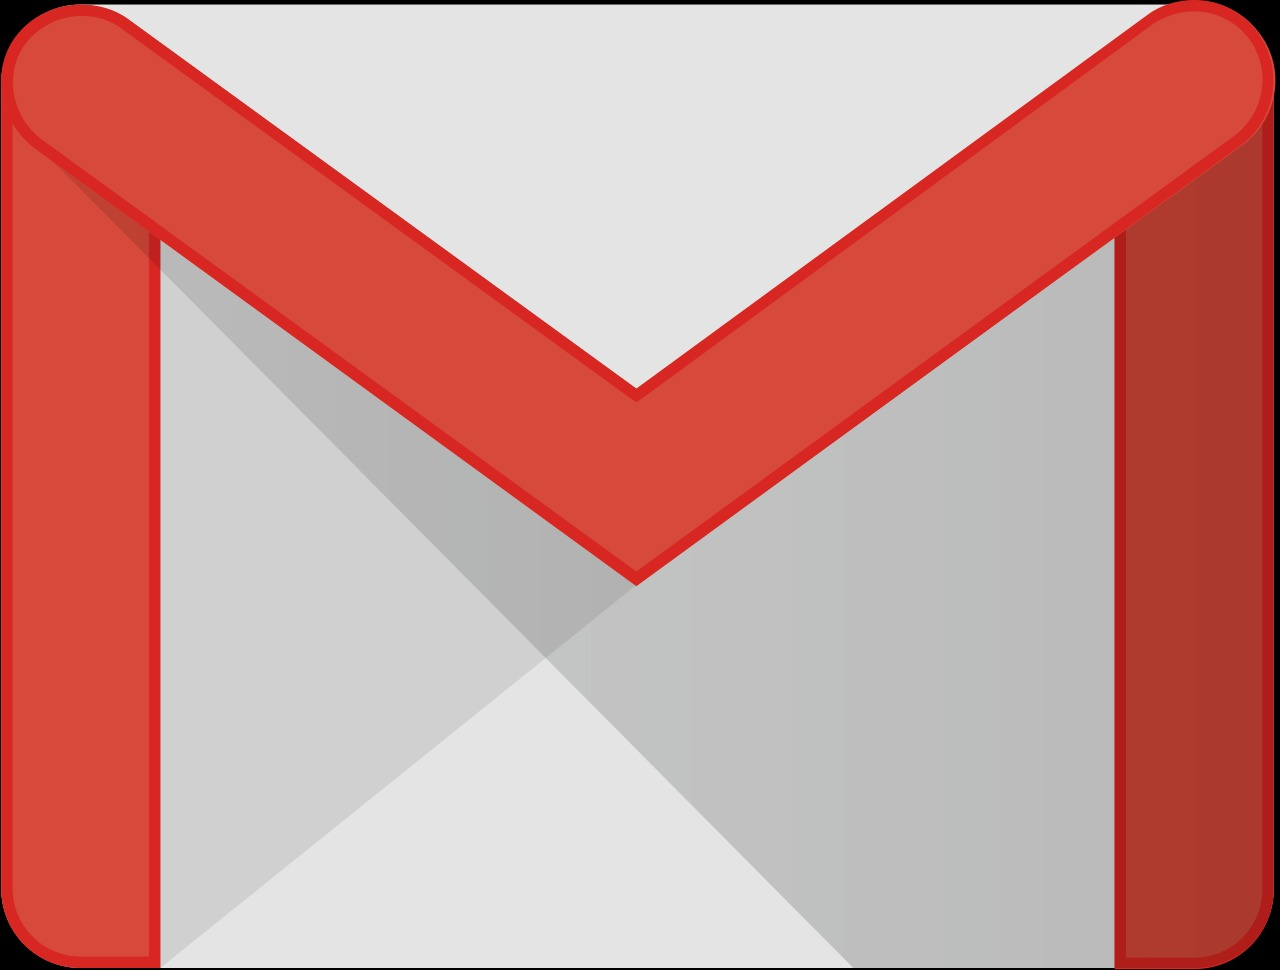 Gmail Logo | Online Marketing Nieuws | Succesfactor.nu